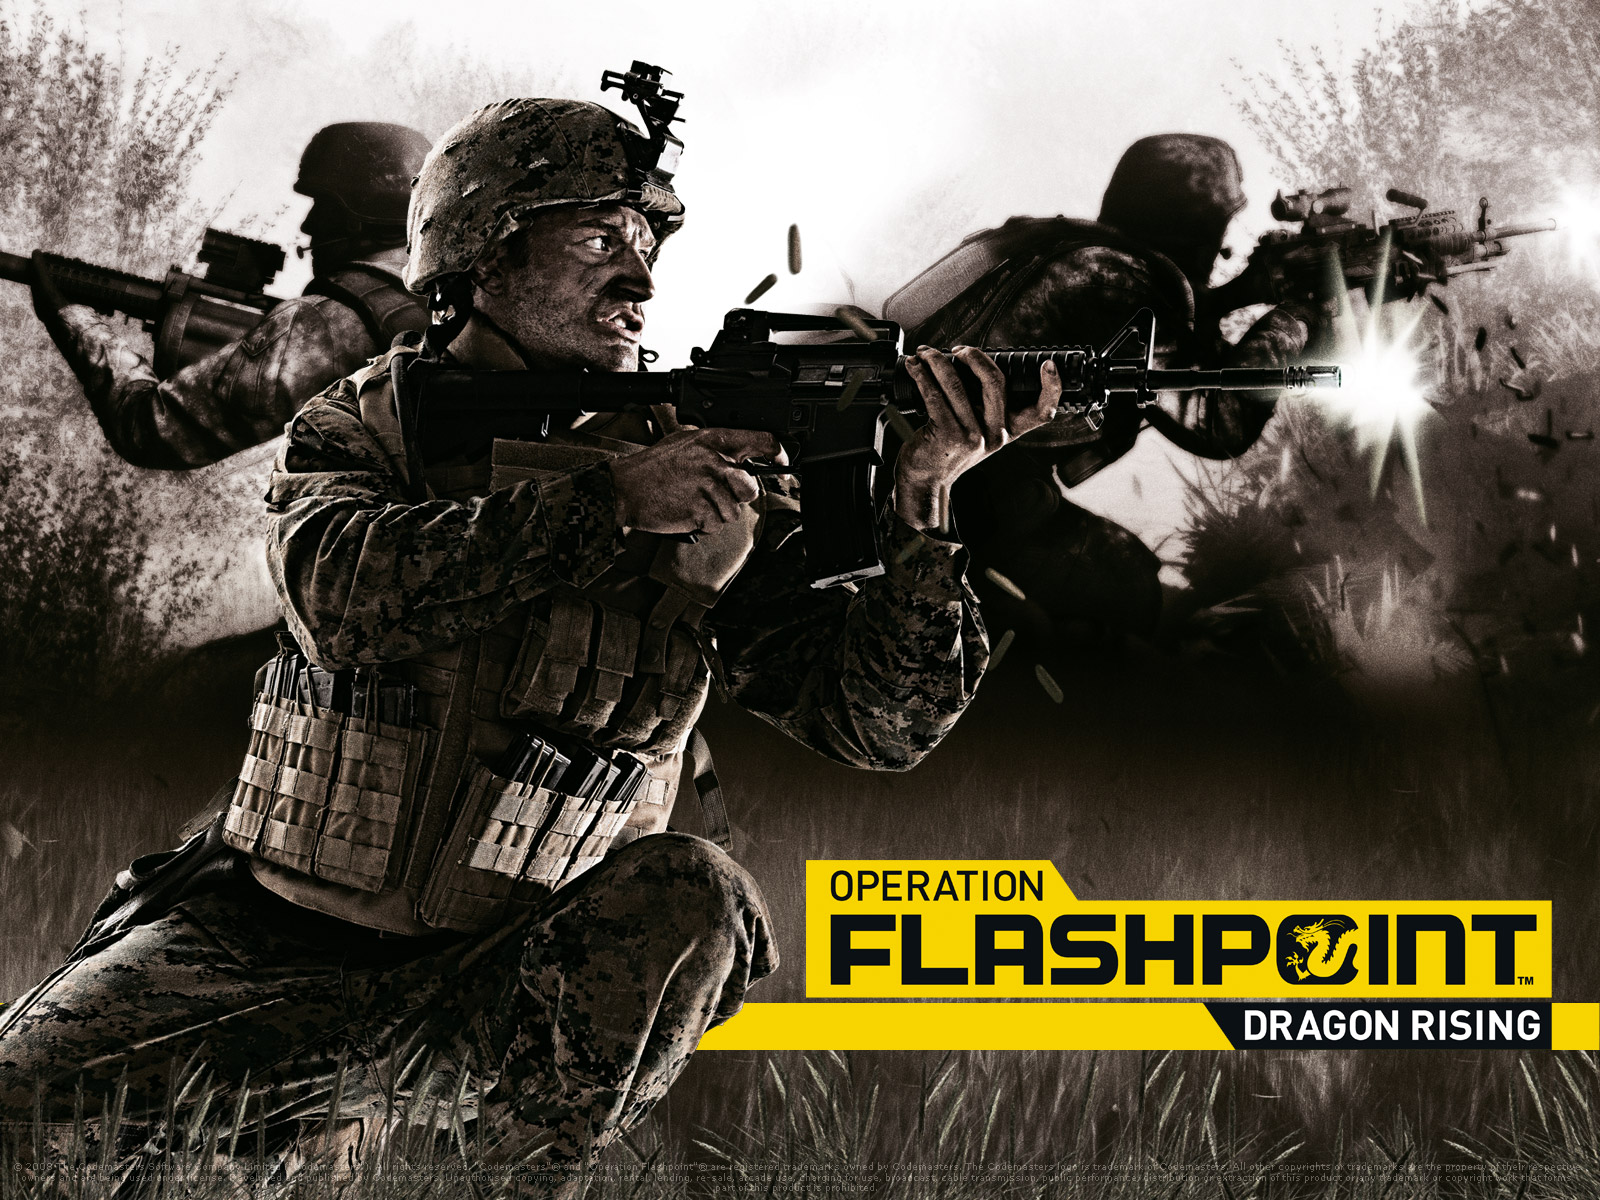 NIGHT TRAIN 20 FLASHPOINT 21 JULIO CQB GEDAT Operation-flashpoint-2-dragon-rising